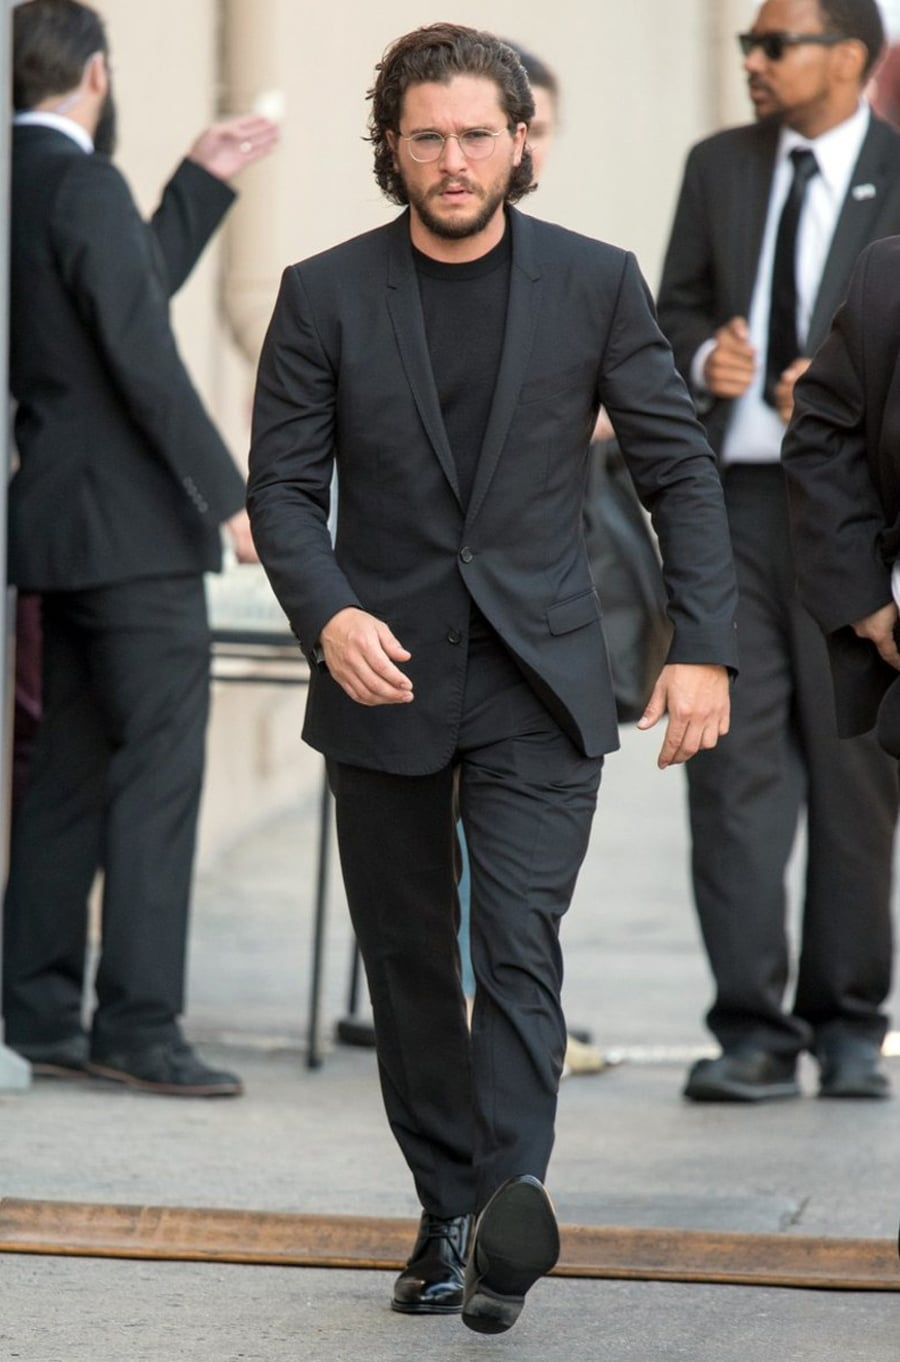 kit harington all black suit